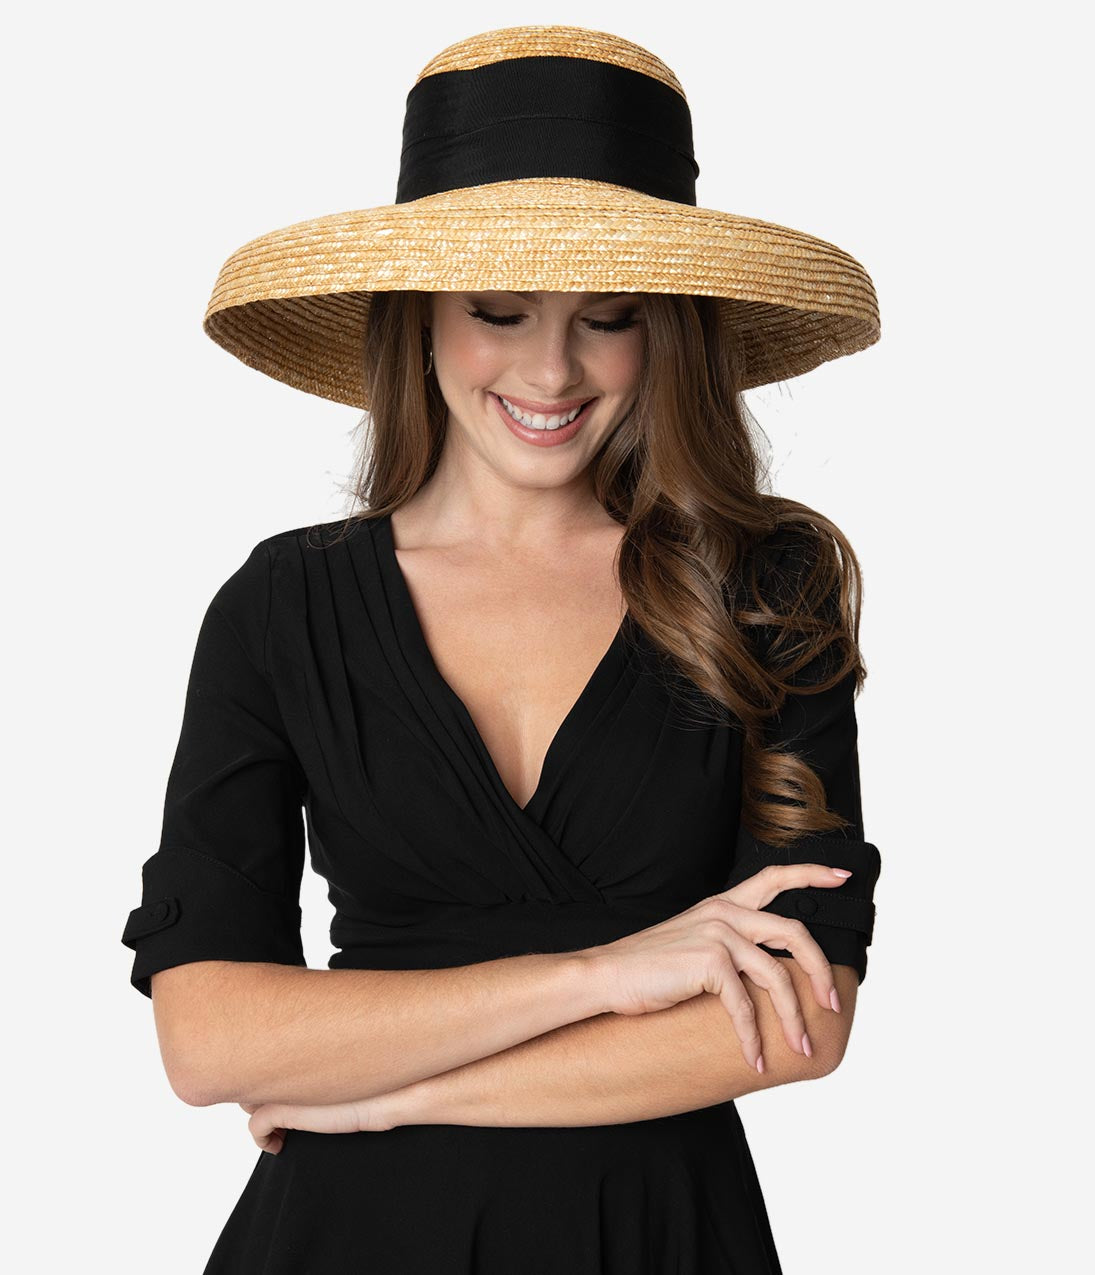 1950s Women's Hat Styles & History Vintage Style Tan  Black Ribbon Bell Brim Straw Hat $52.00 AT vintagedancer.com